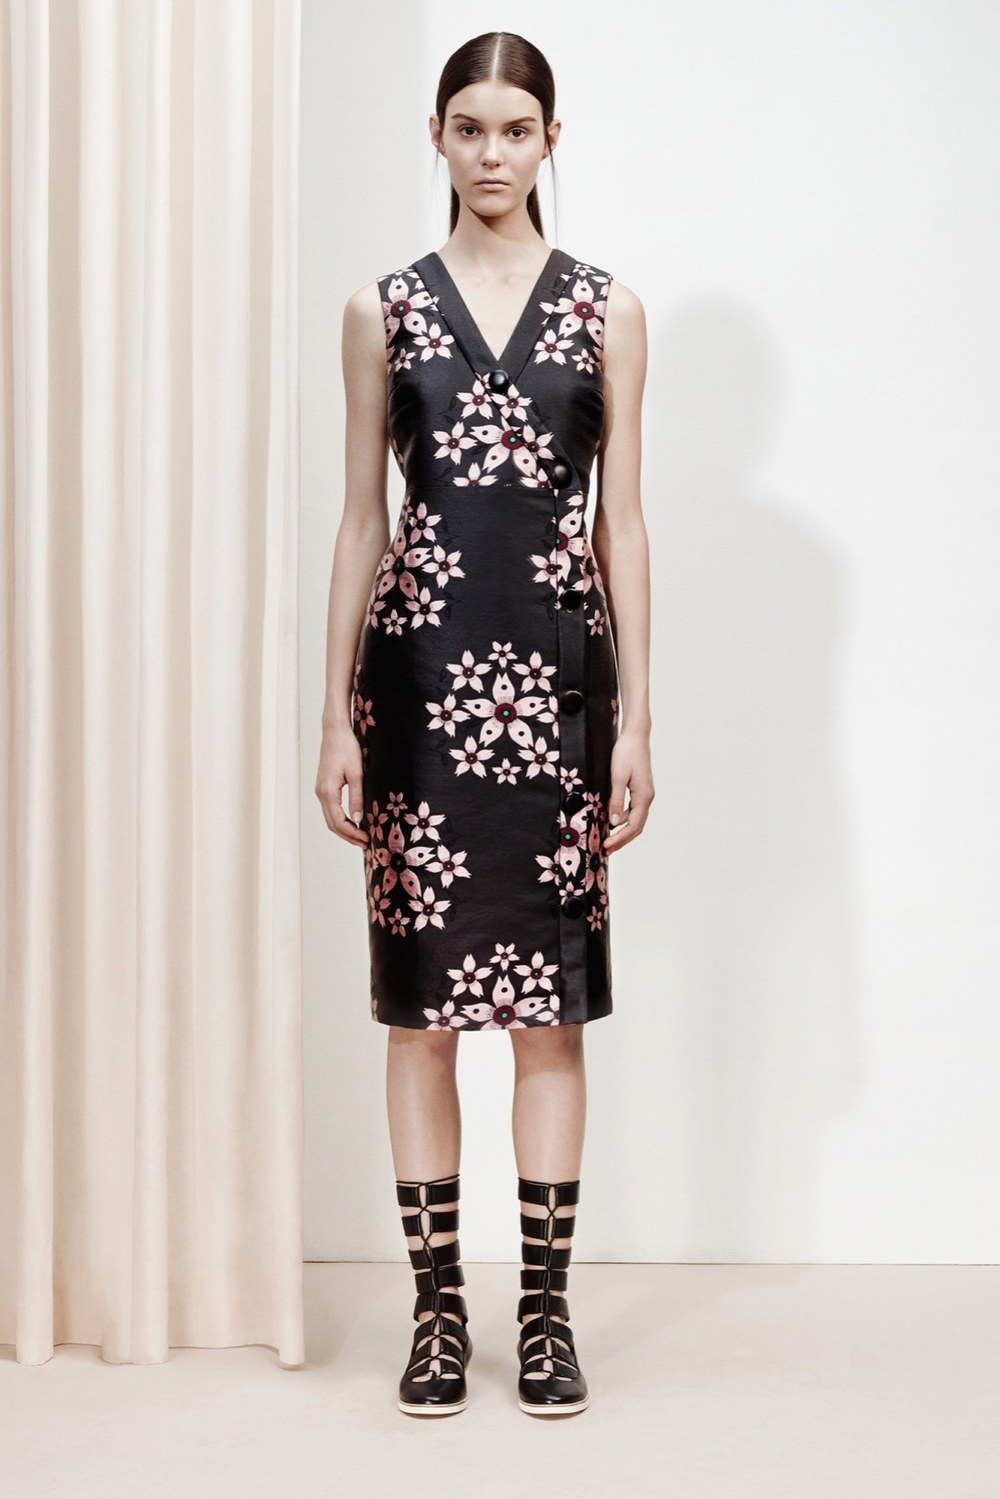 SUNO Resort 2015 source: vogue.com